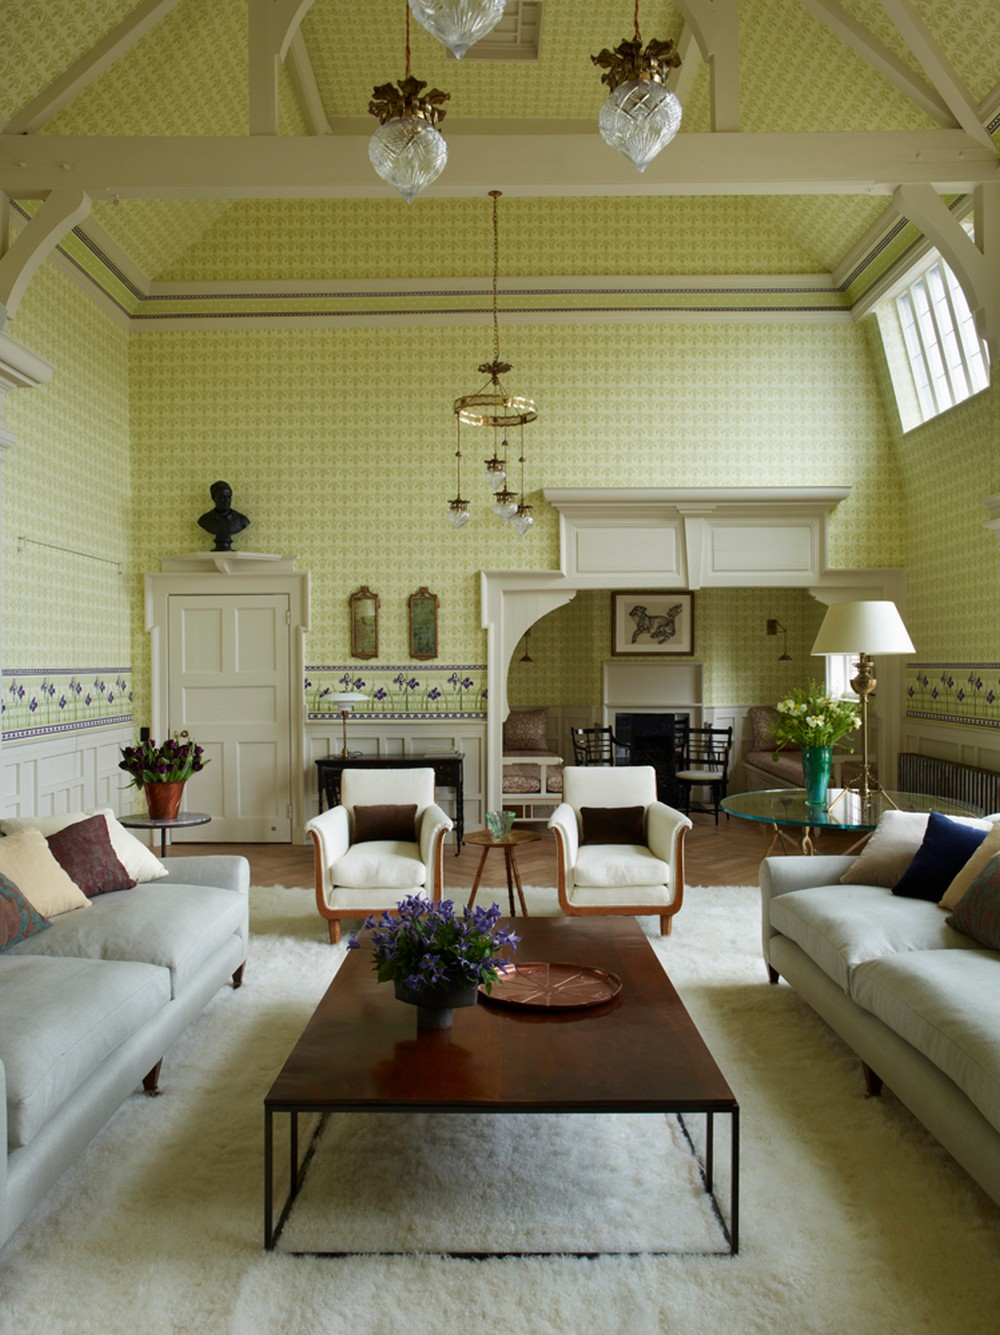 Rose Uniacke Is One Of The Biggest Design Influencers In The UK rose uniacke Rose Uniacke Is One Of The Biggest Design Influencers In The UK Rose Uniacke Is One Of The Biggest Design Influencers In The UK 6